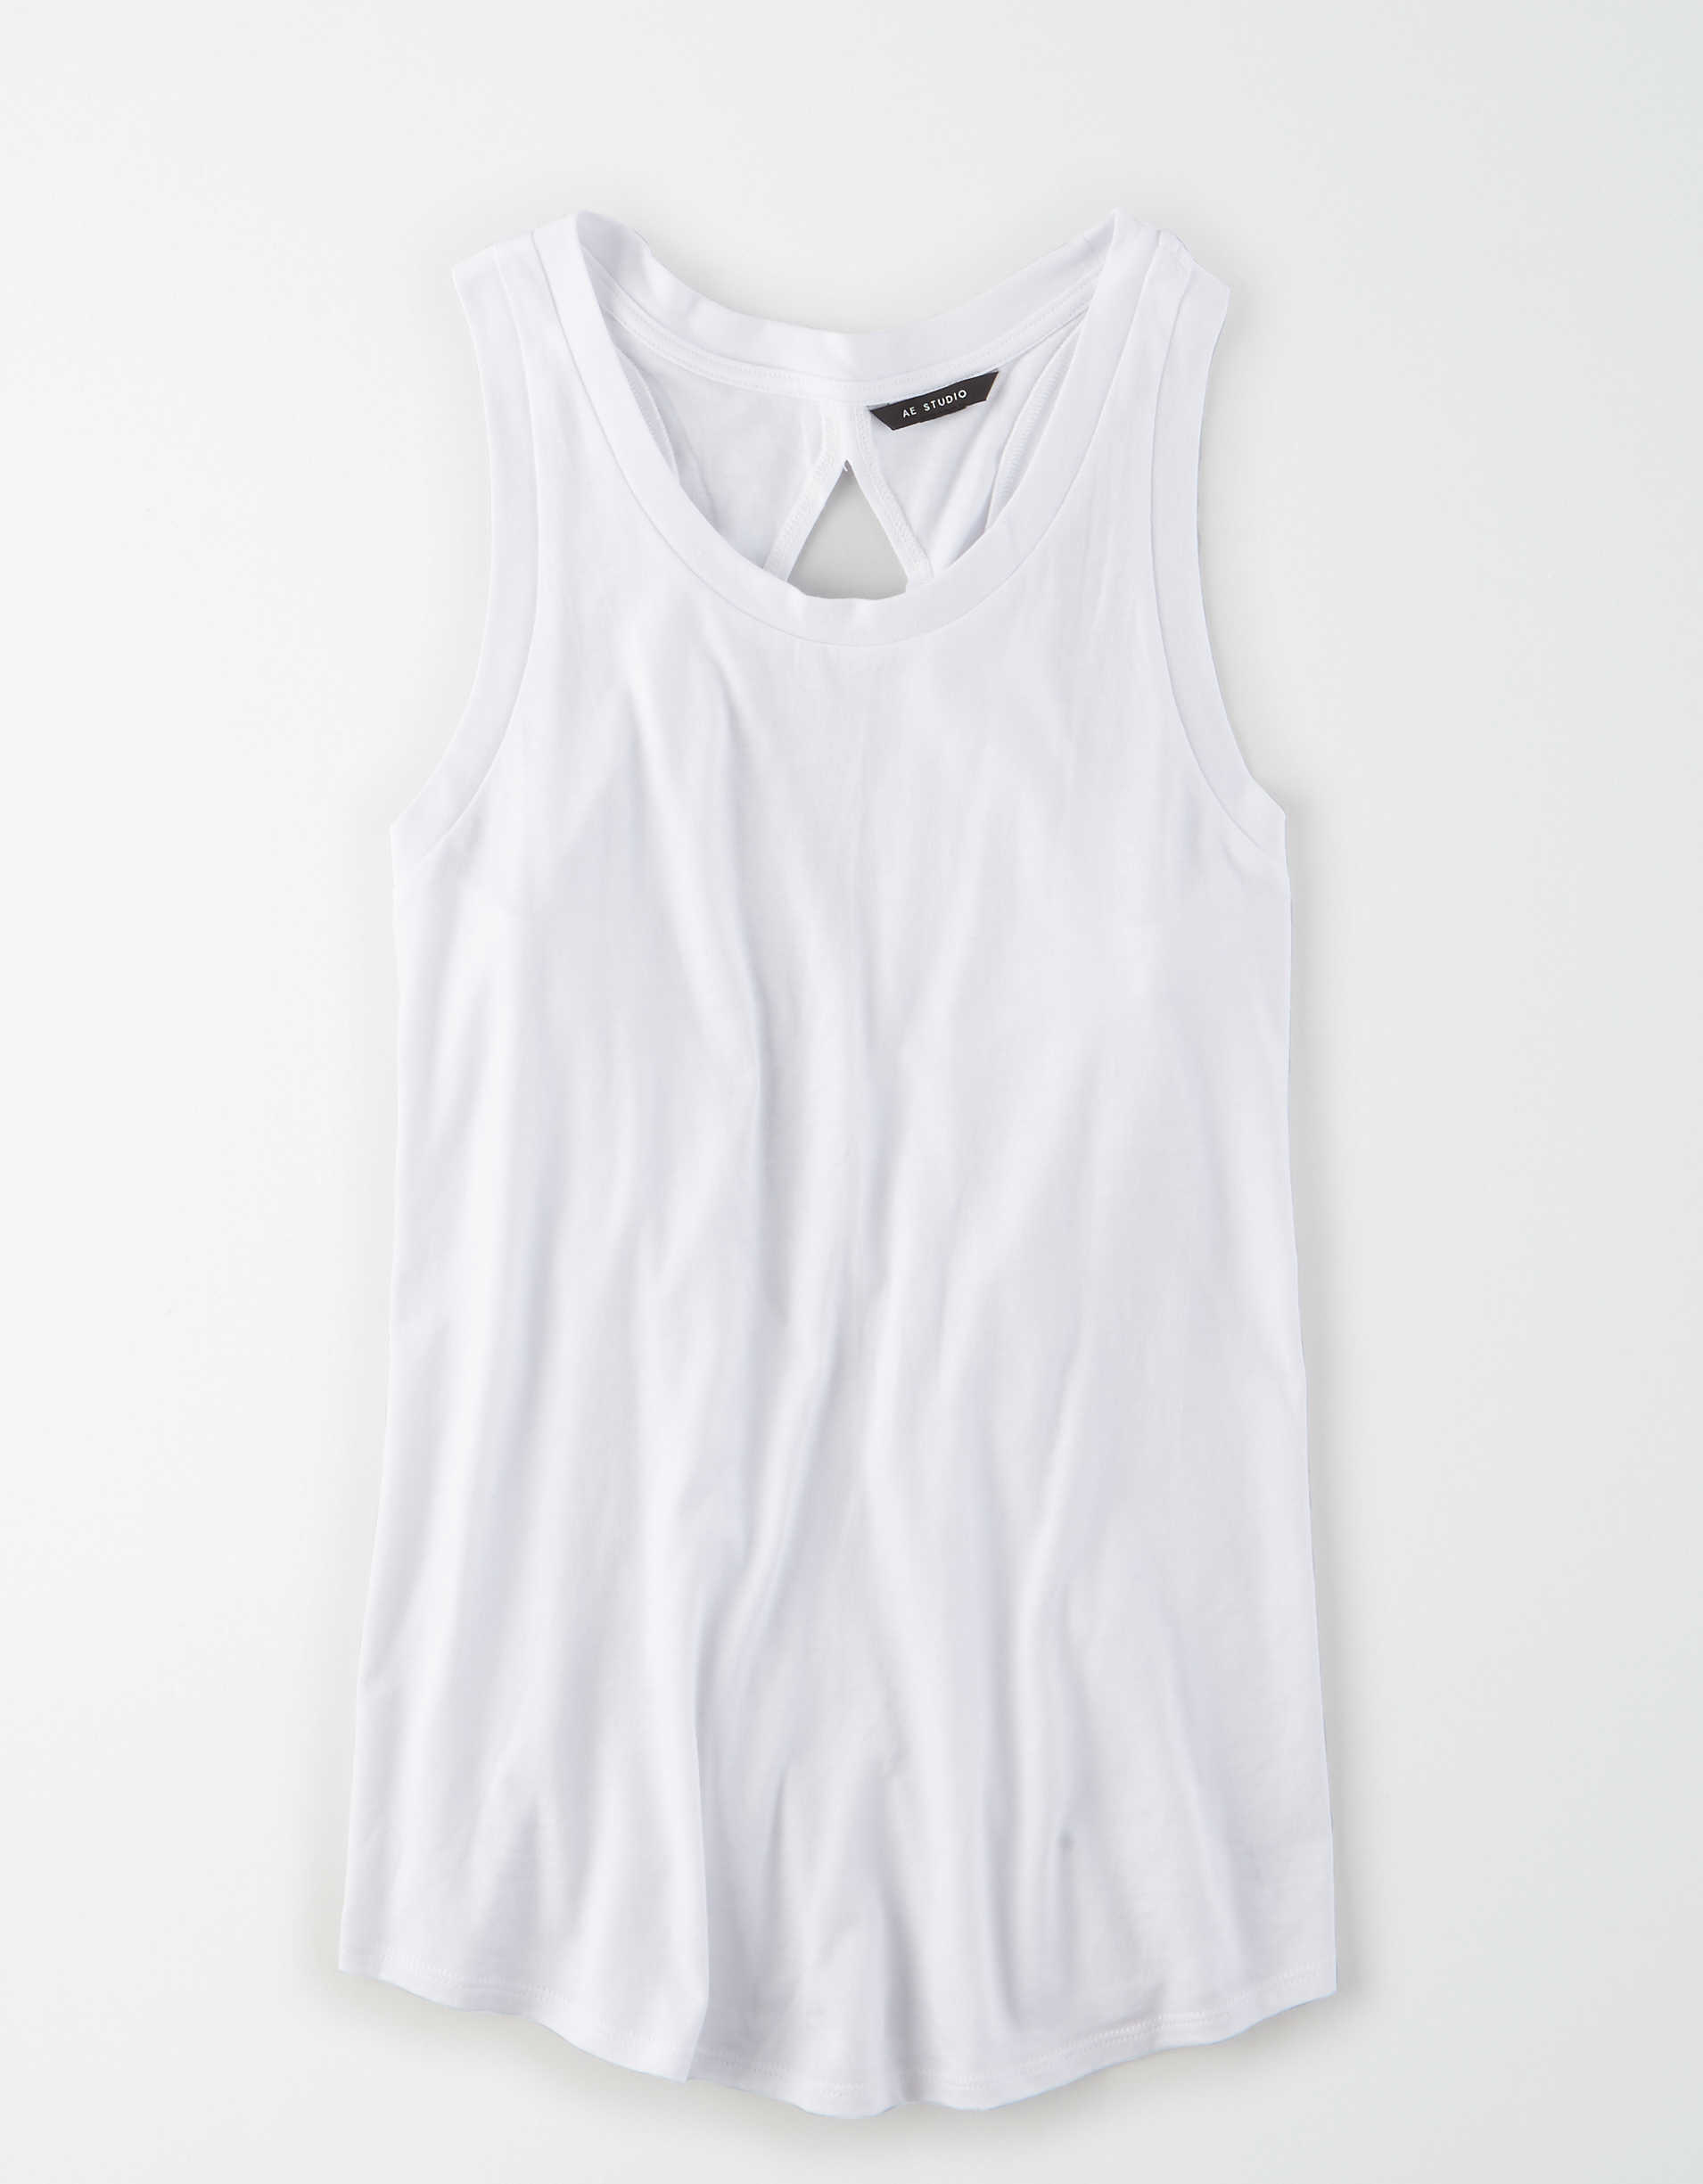 AE Studio Open Back Tank Top